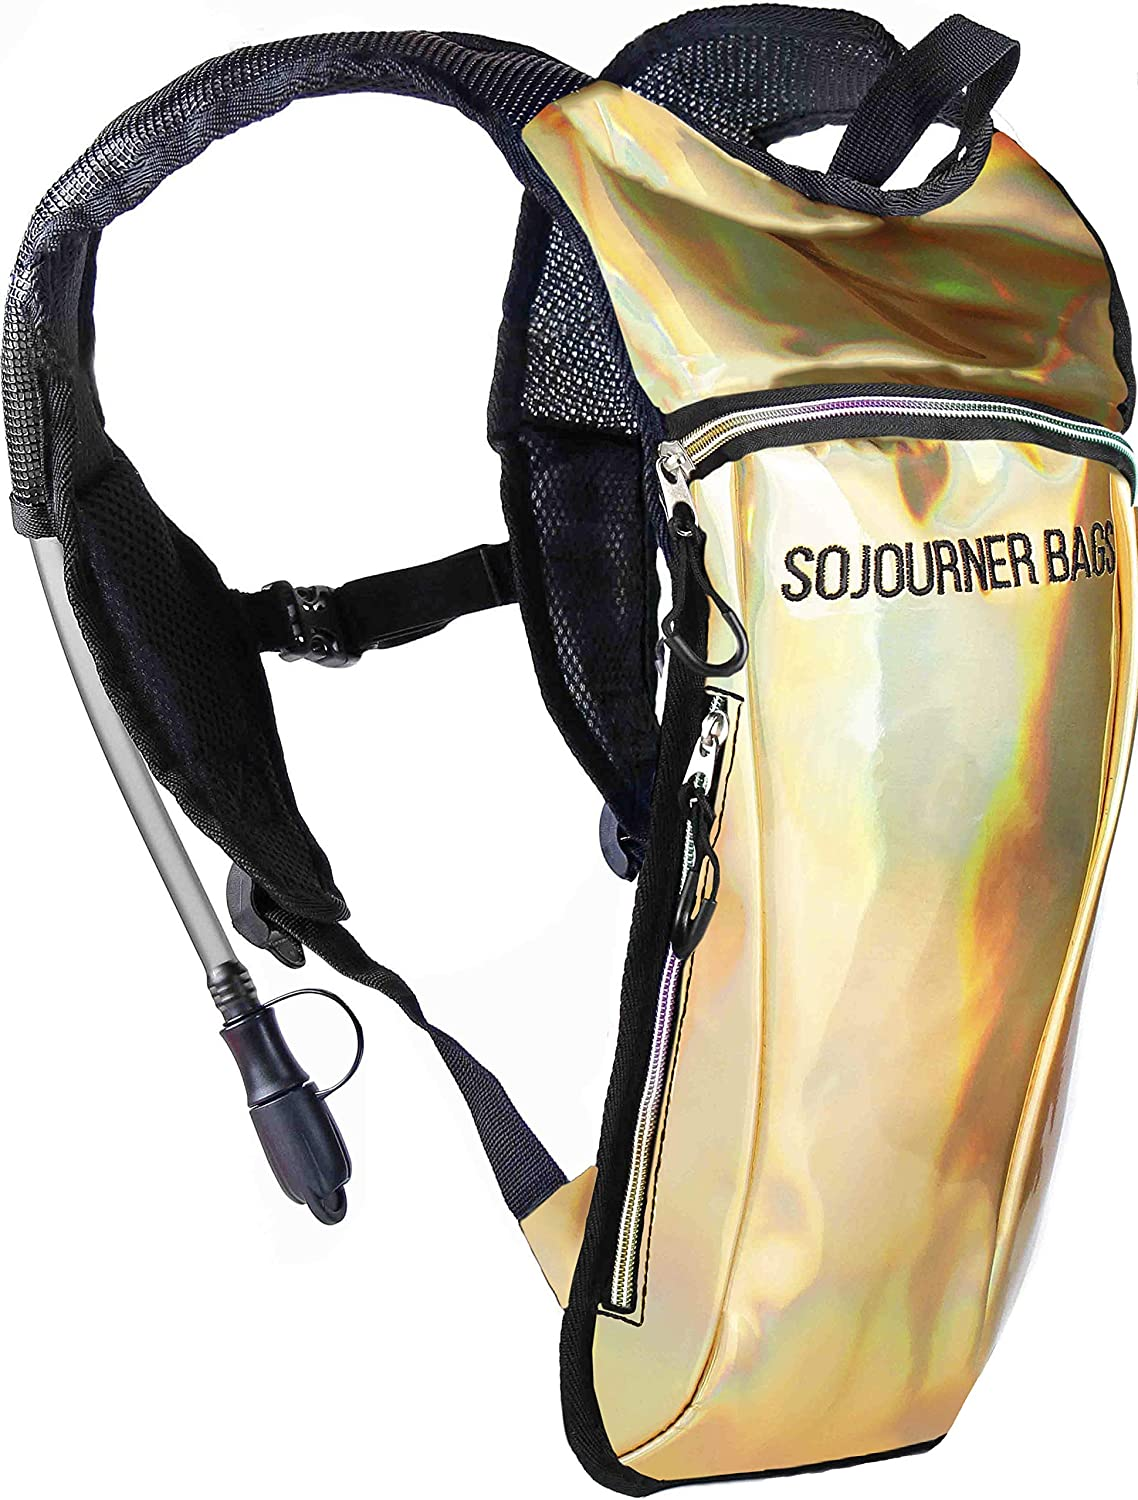 Sojourner Rave Hydration Pack Backpack2L Water Bladder Included for Festivals, Raves, Hiking, Biking, Climbing, Running and More (2 Pocket)